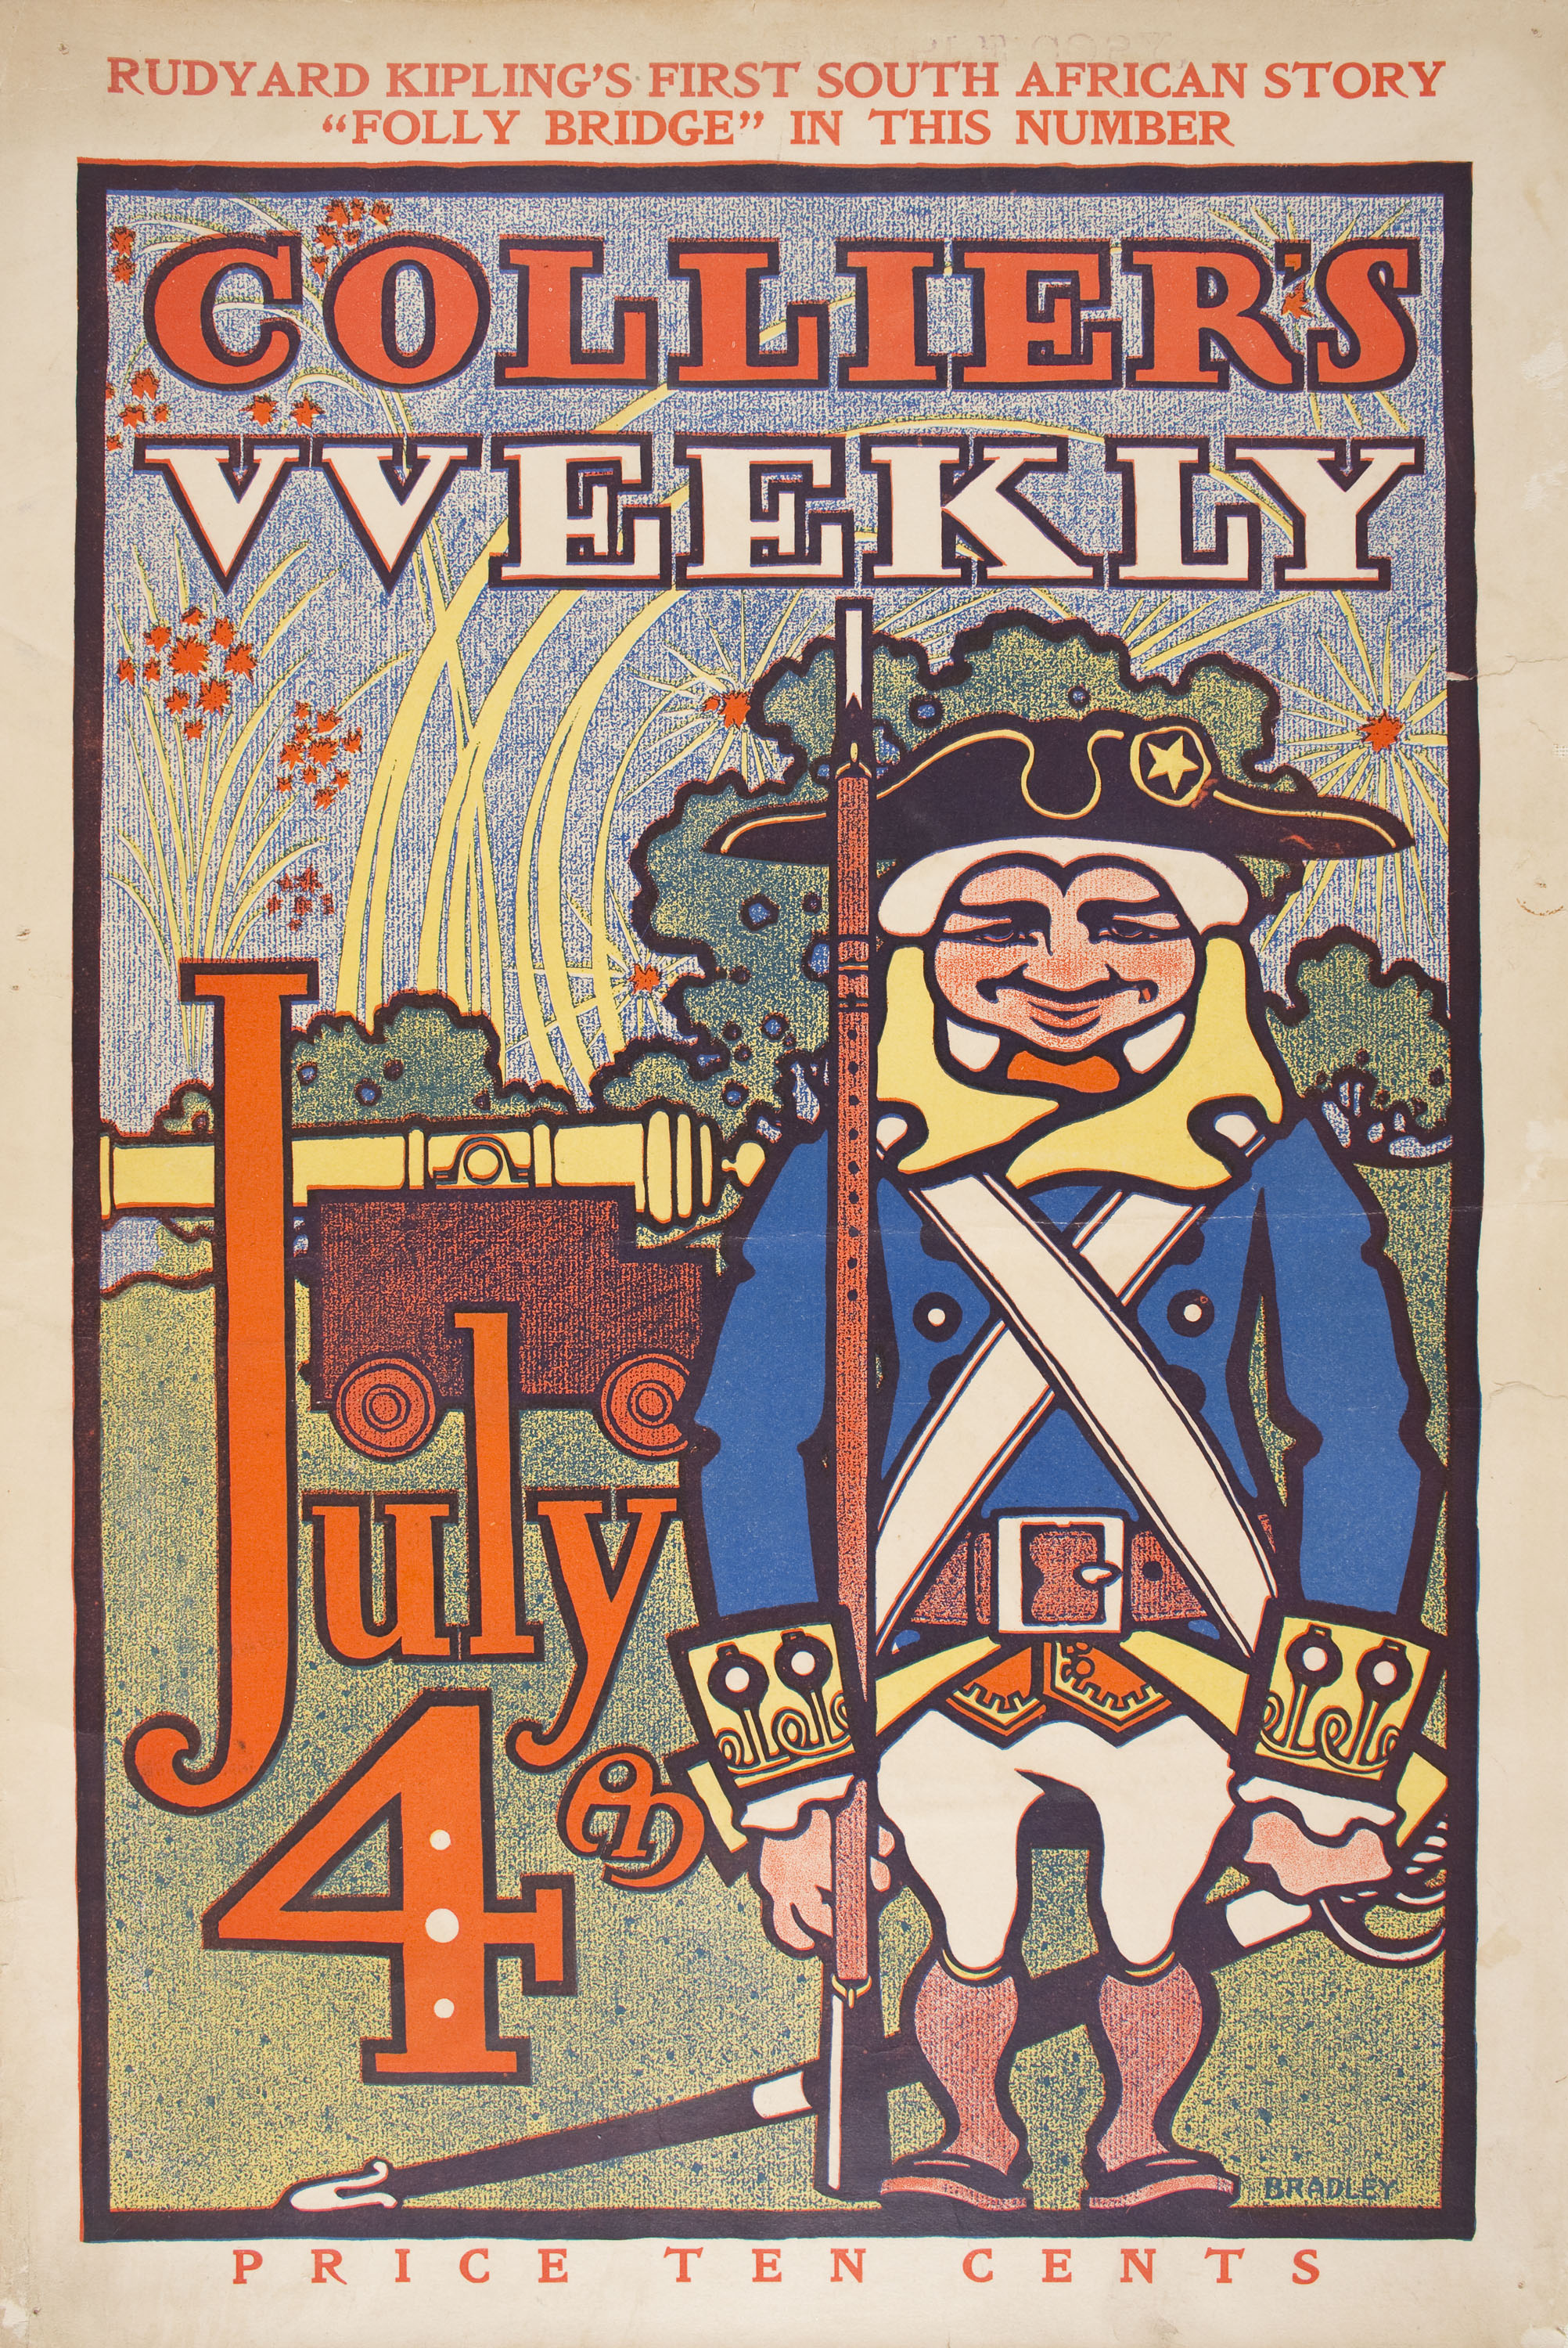 William Henry Bradley - Collier's Weekly. July - Circa 1895-1902